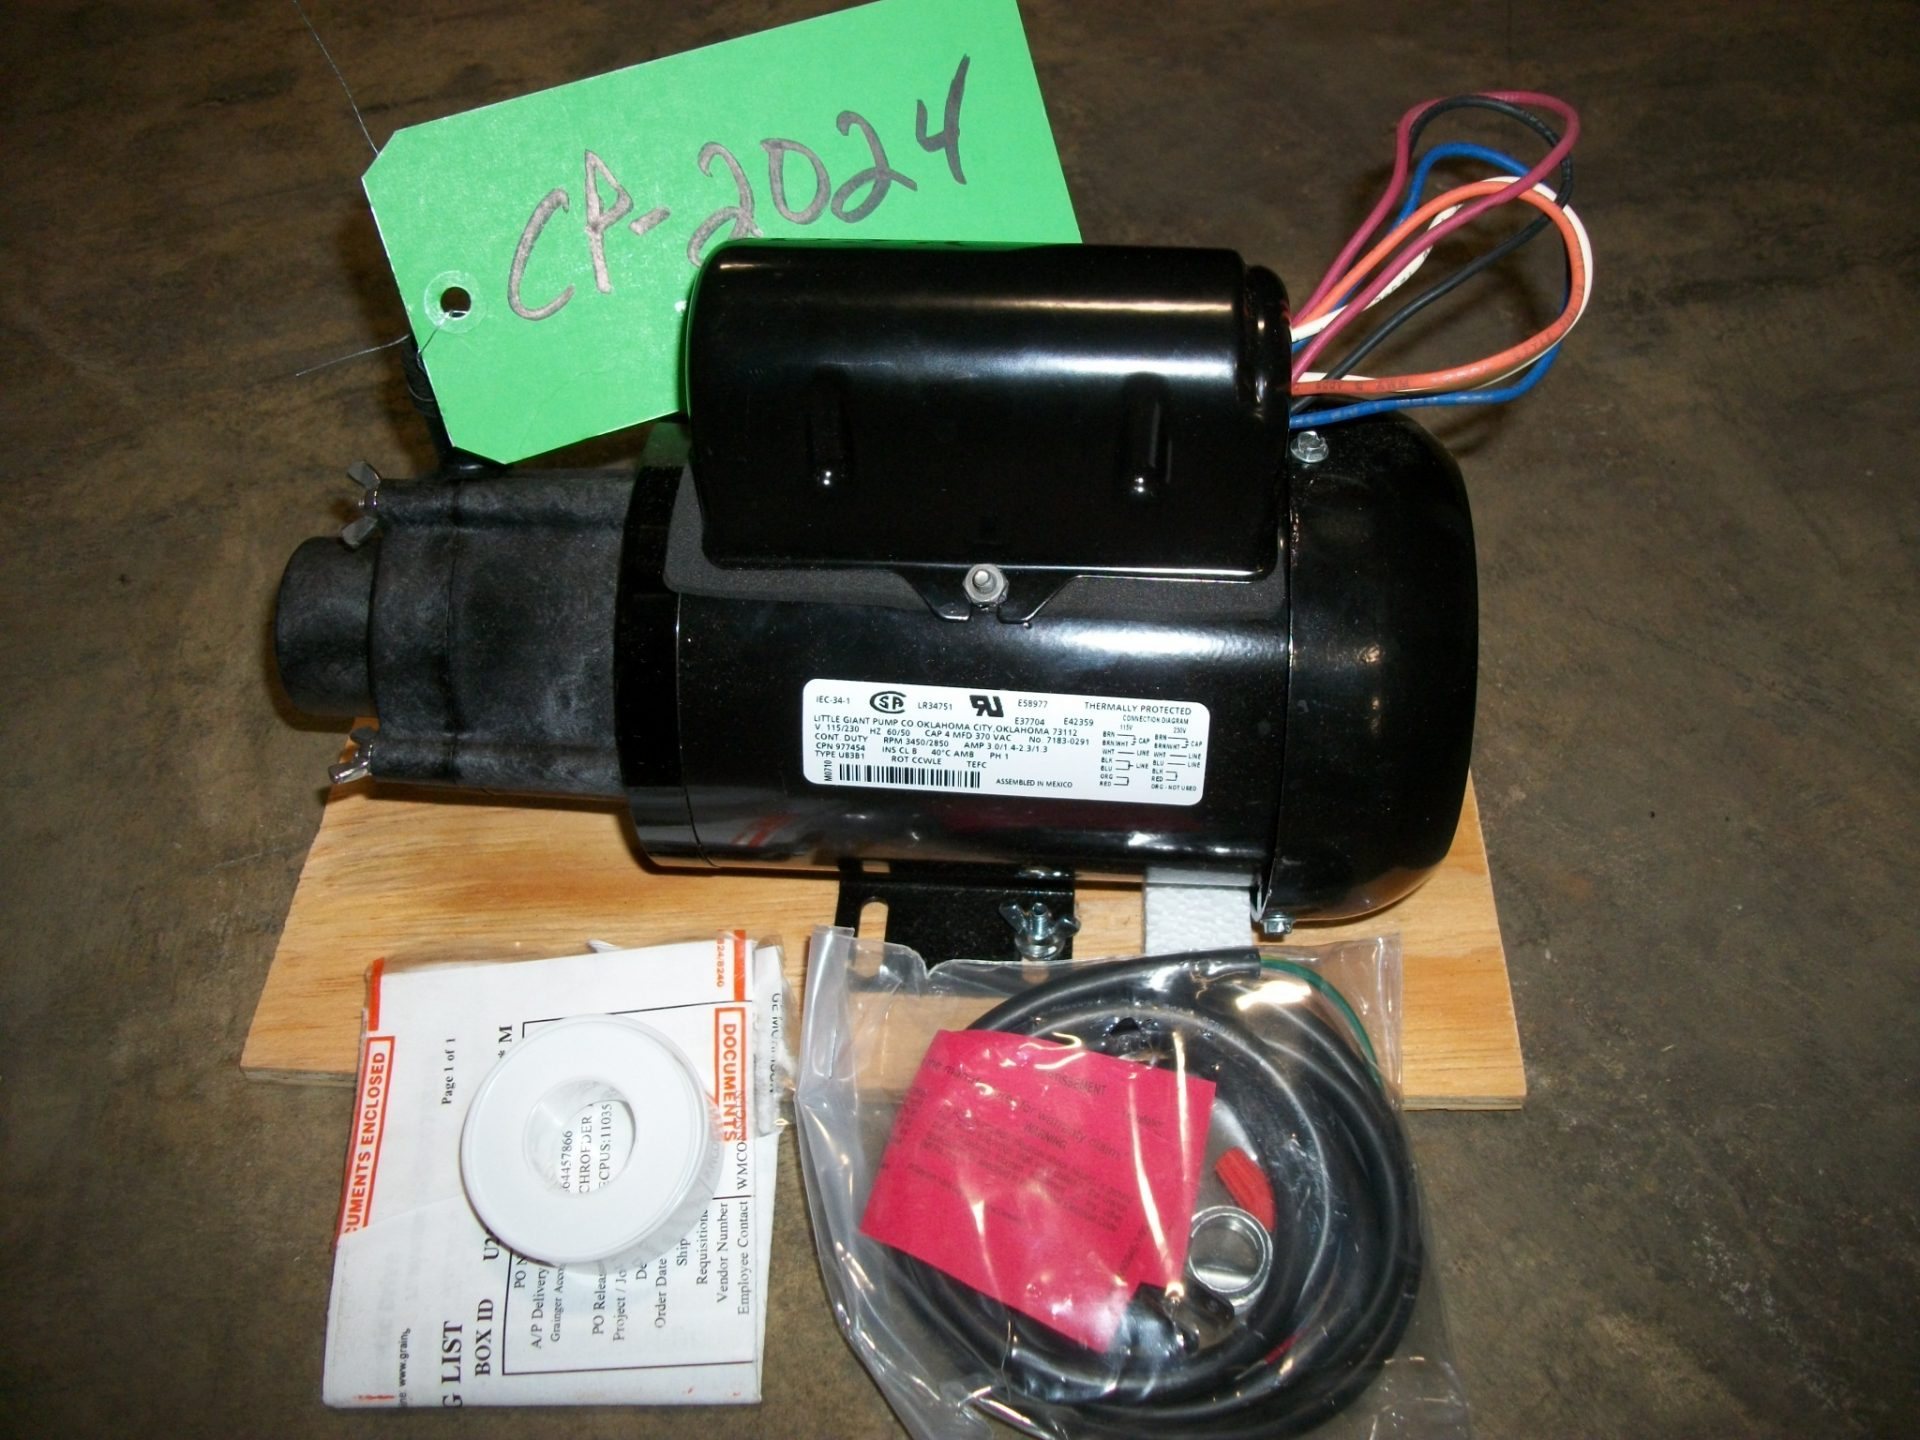 New Centrifugal Pump - NEW Little Giant Outlet Centrifugal Pump-Pumps - Centrifugal